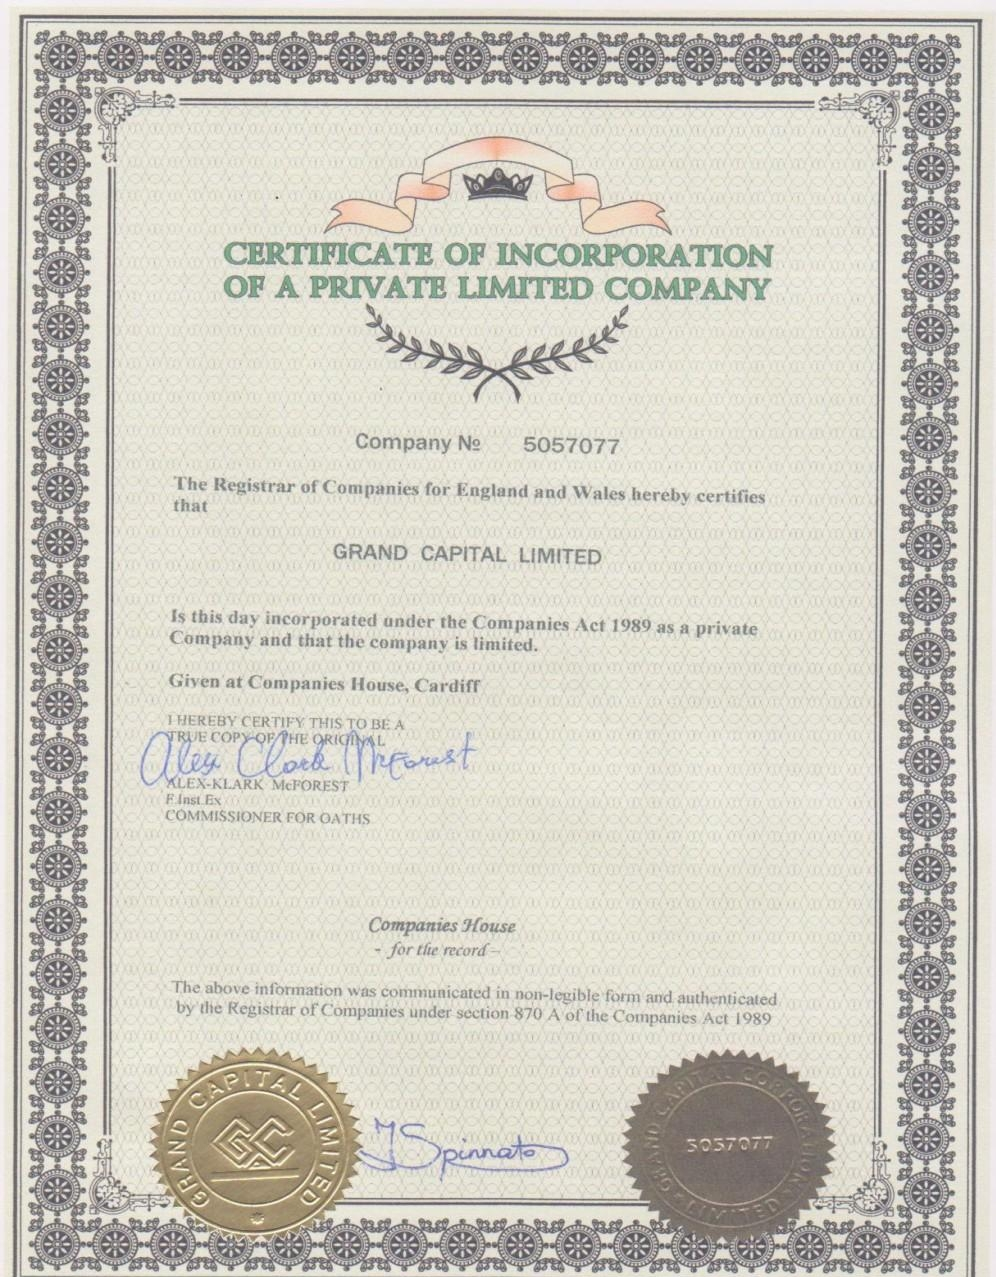 2.8. Certificate of Incorporation of Private Limited Company Company # 5057077